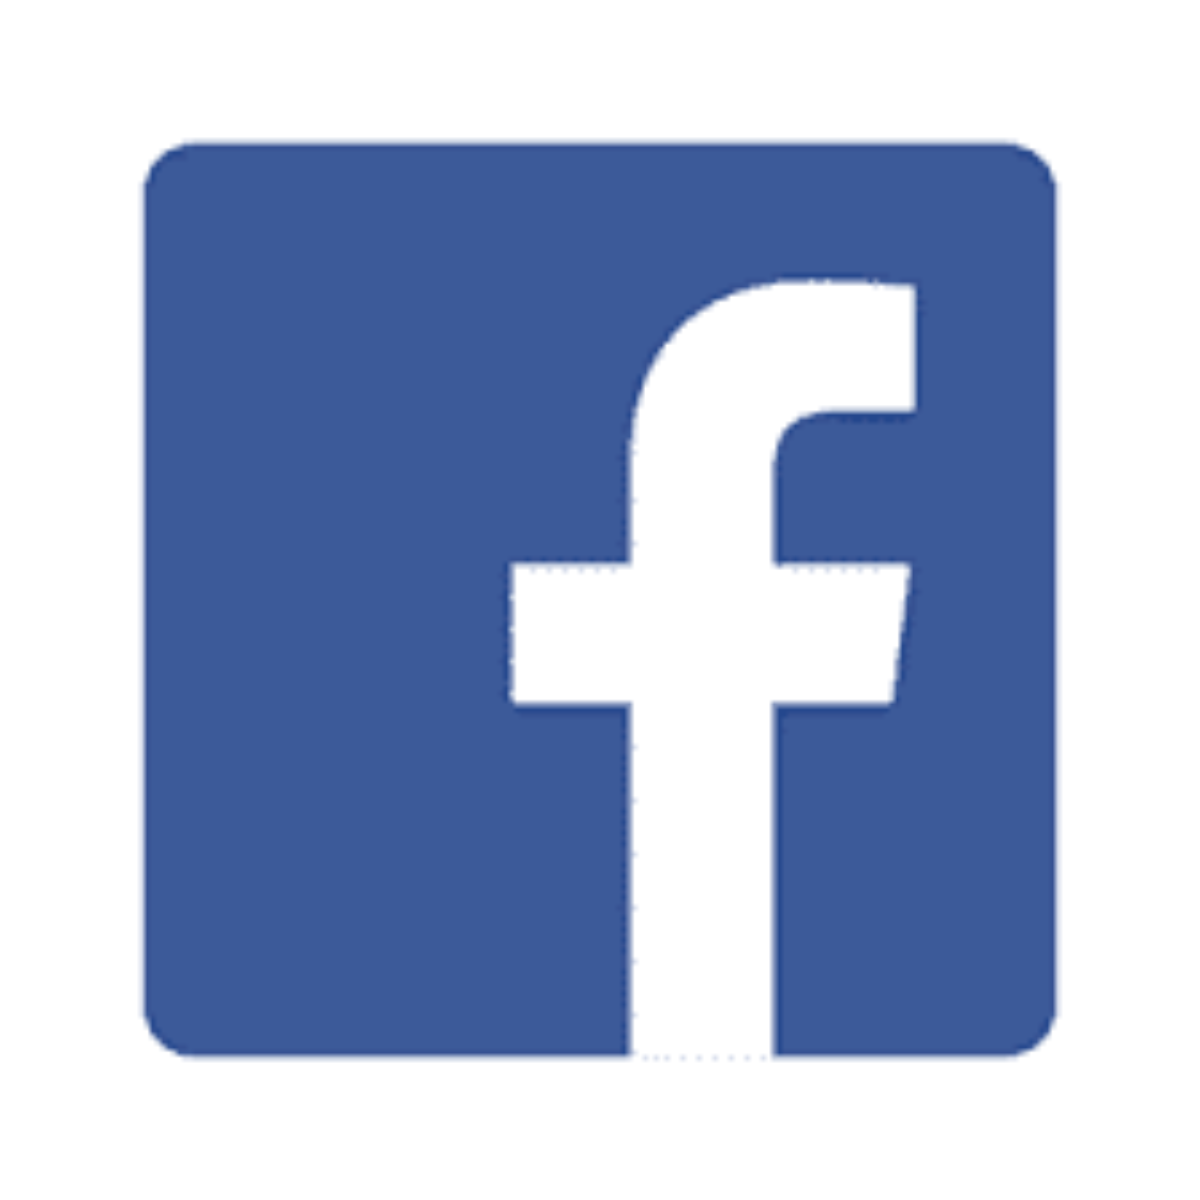 Facebook Apk 302 0 0 0 0 Download Free For Android Softmany Discover what your friends and contacts are up to from your profile. facebook apk 302 0 0 0 0 download free